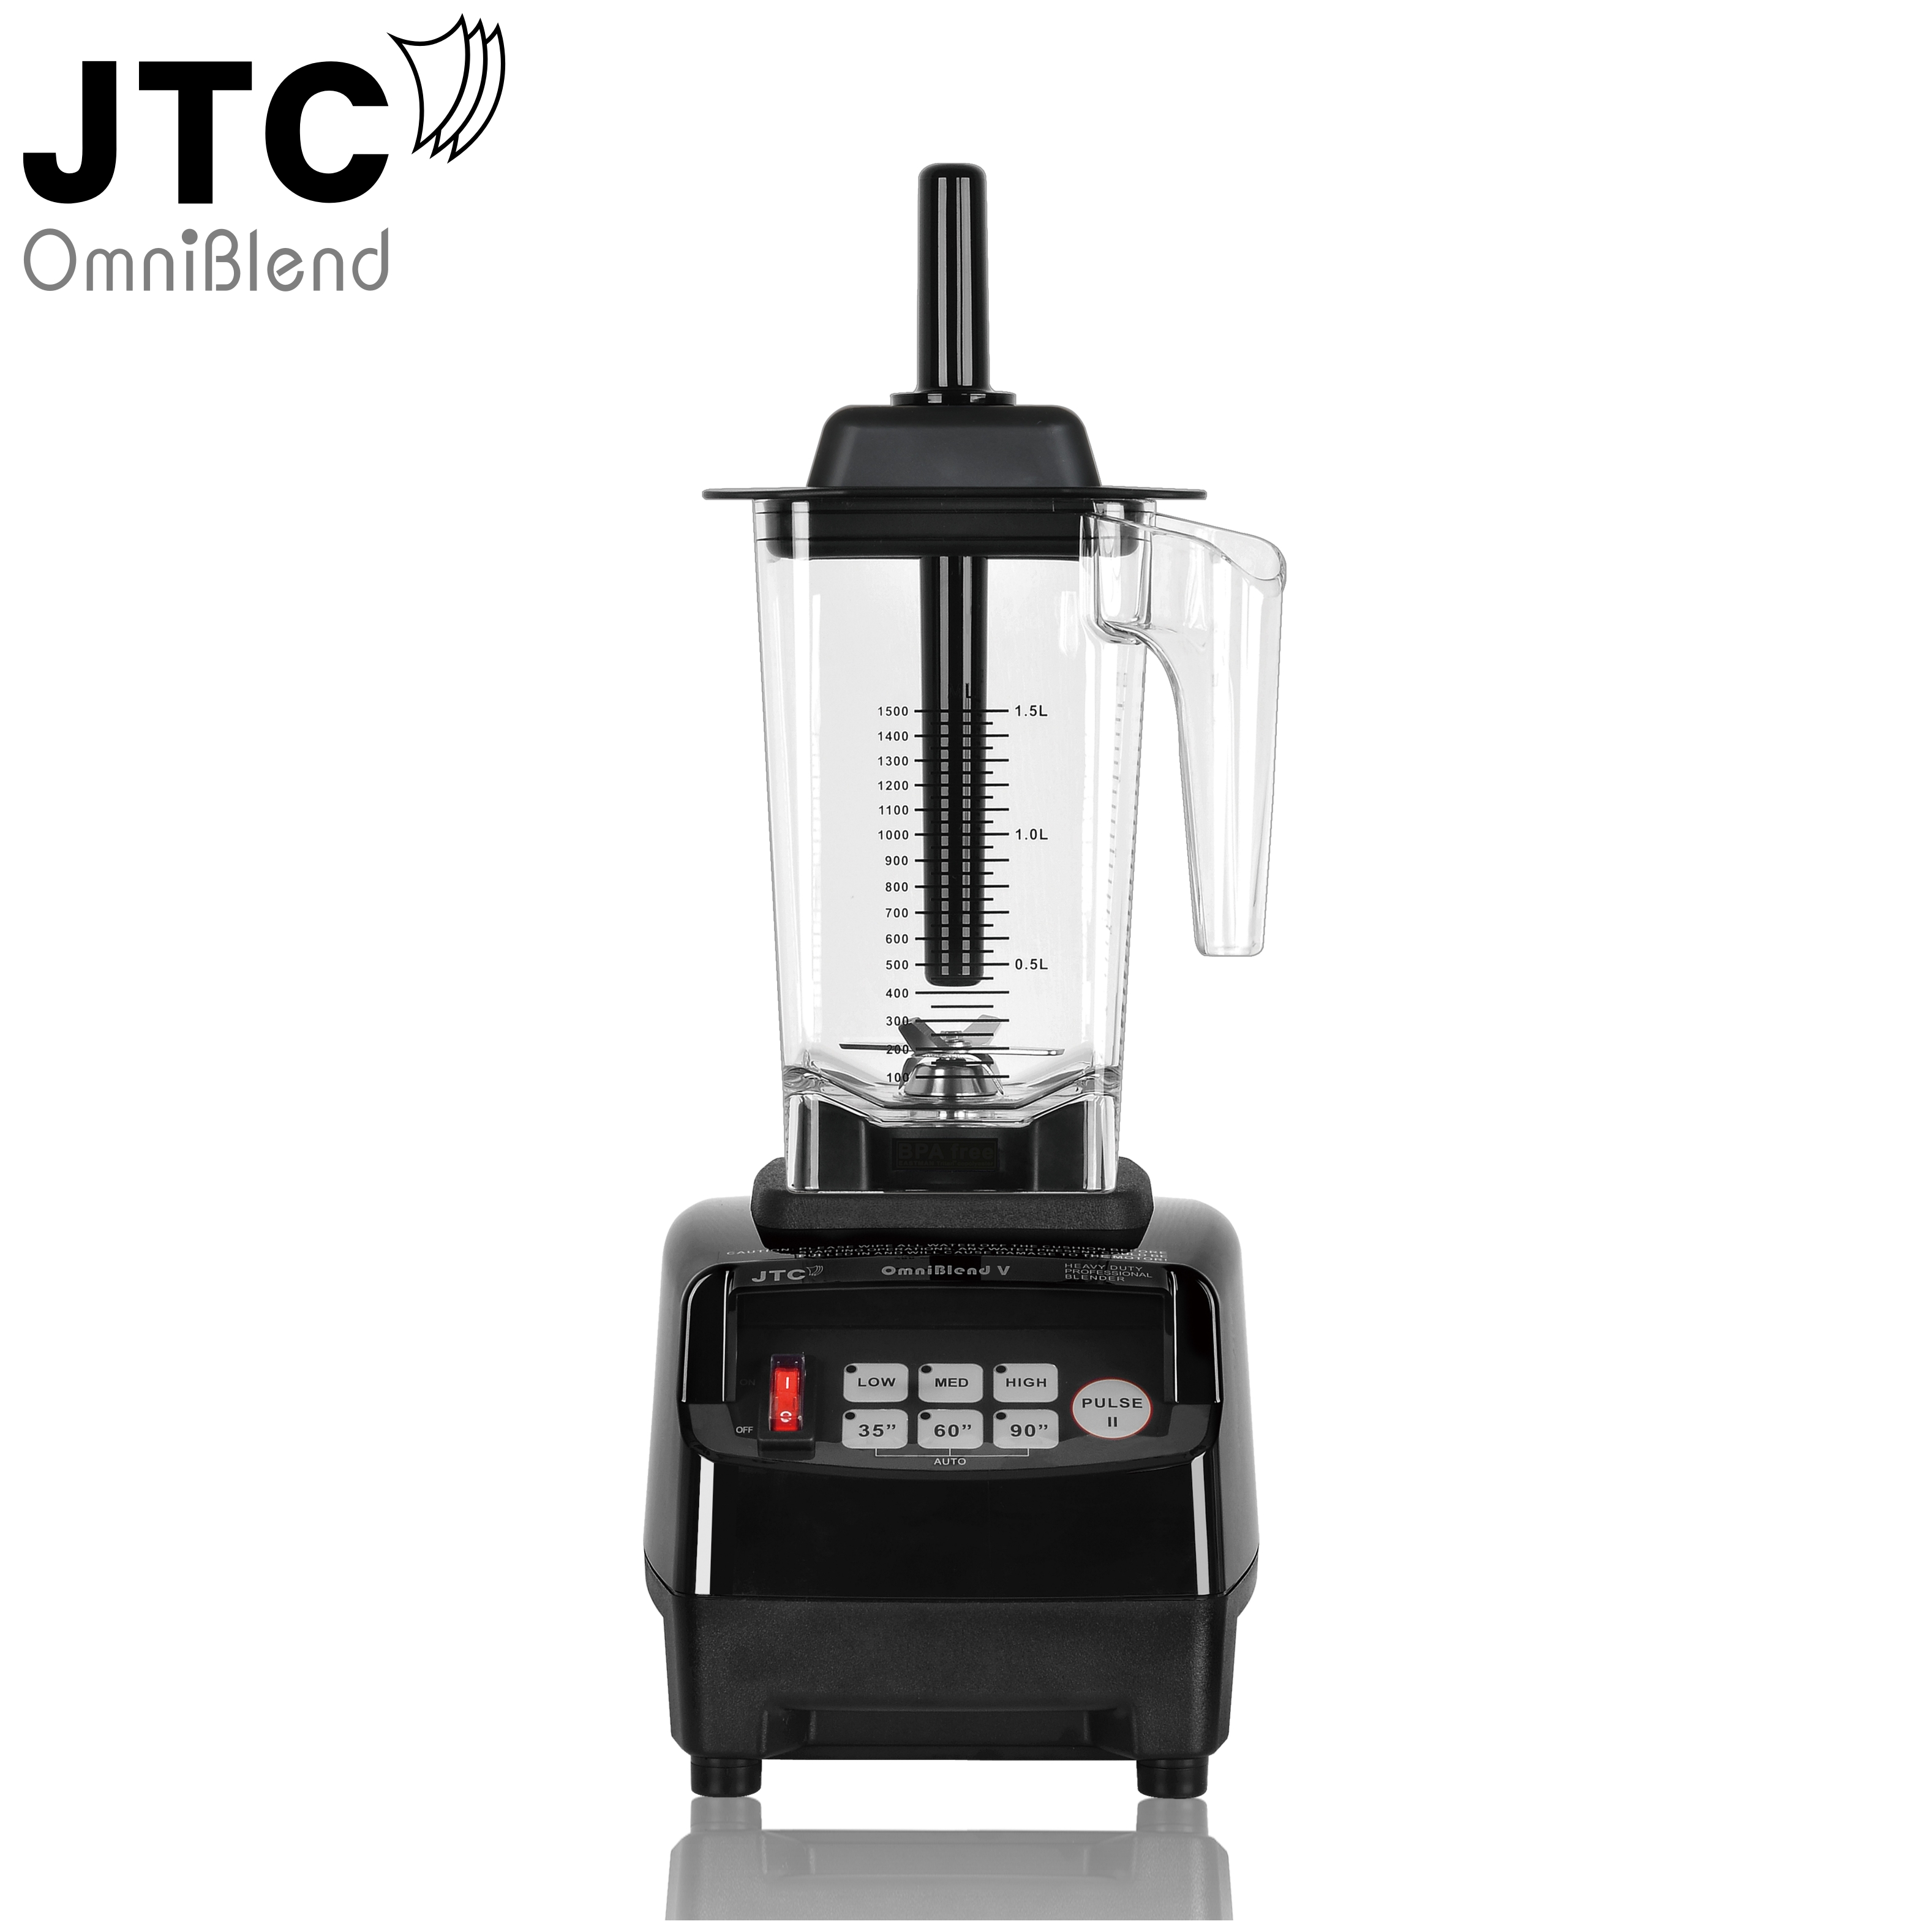 2238W Commercial blender JTC Omniblend Professional Mixer Juicer Fruit Food Processor Ice Smoothies